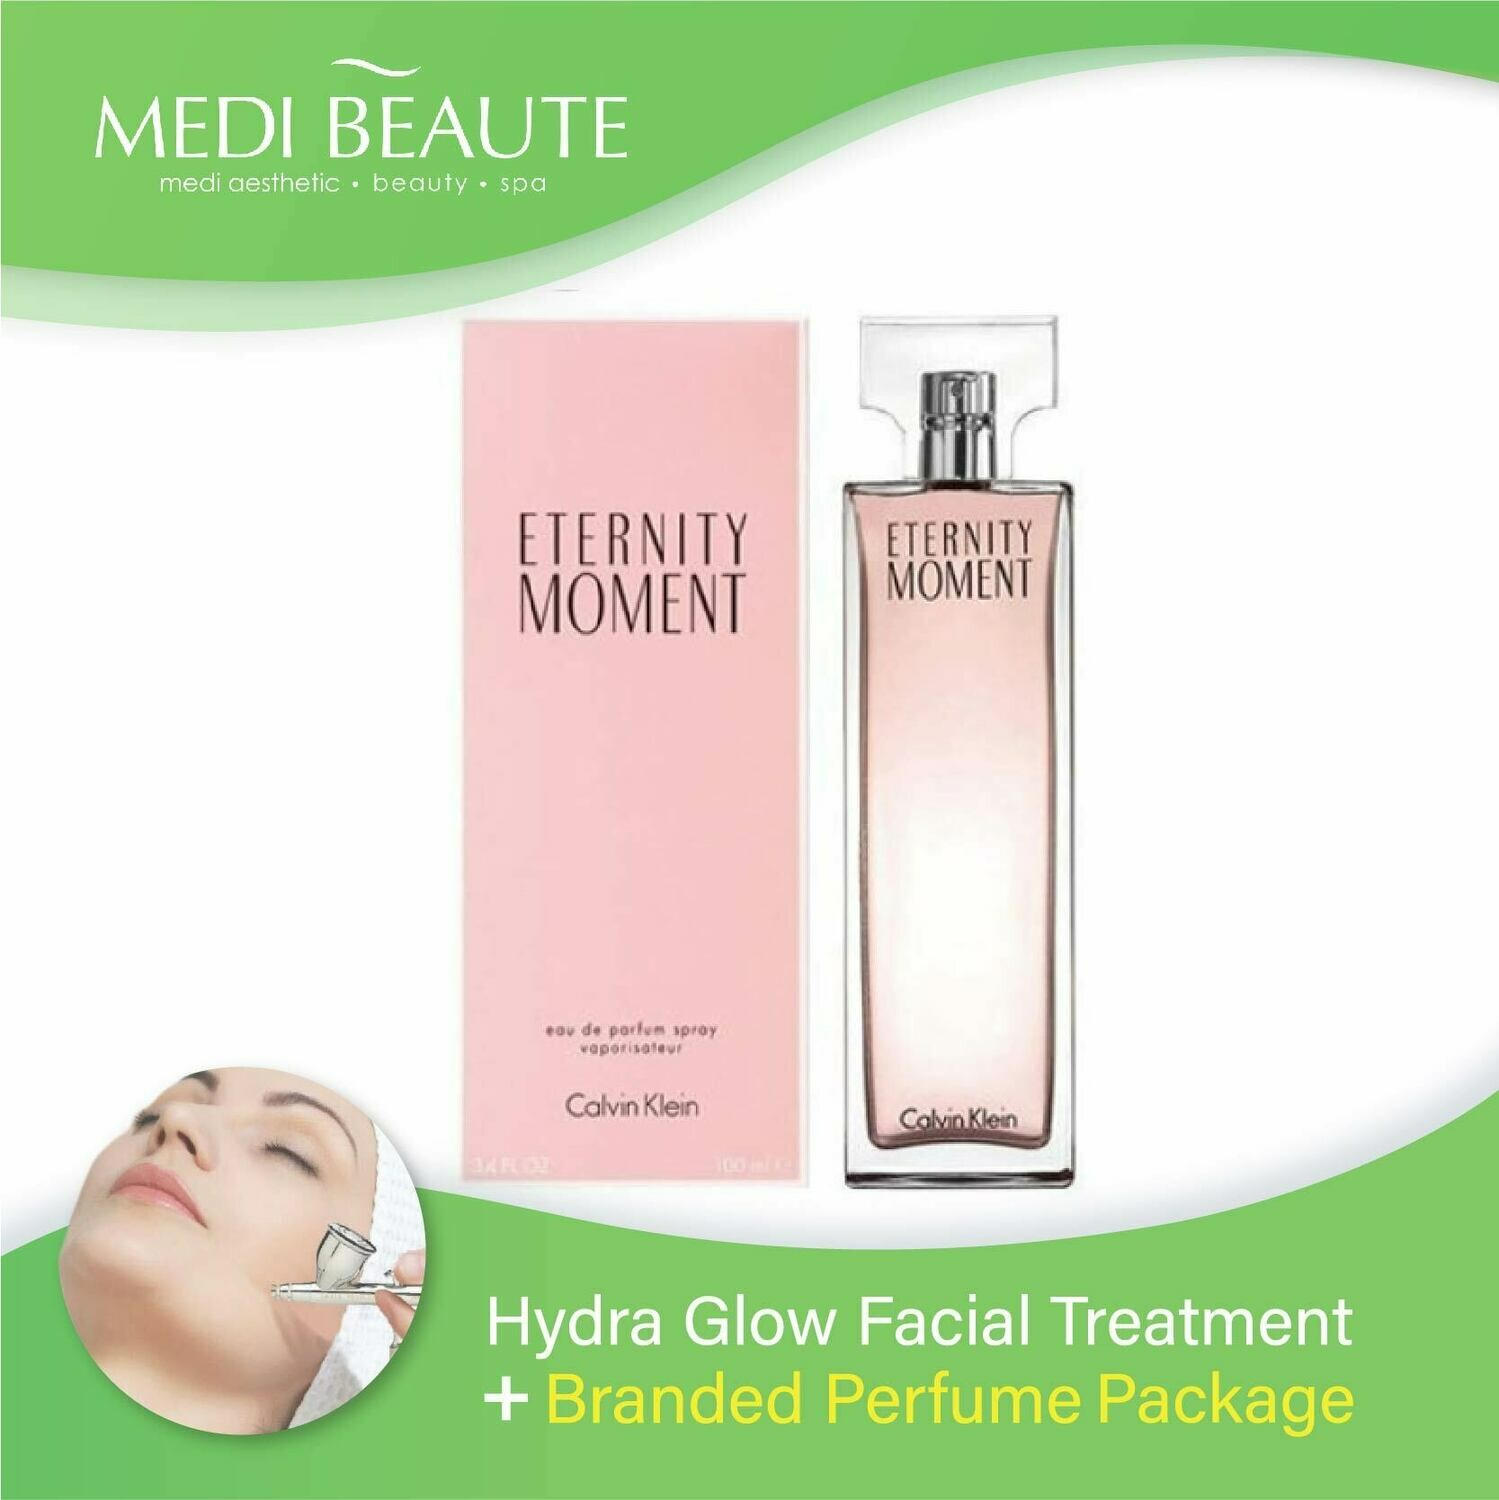 Medi Beaute Hydra Glow Facial + Branded Perfume ( Calvin Klein cK Eternity Moment Lady EDP 100ml) Package